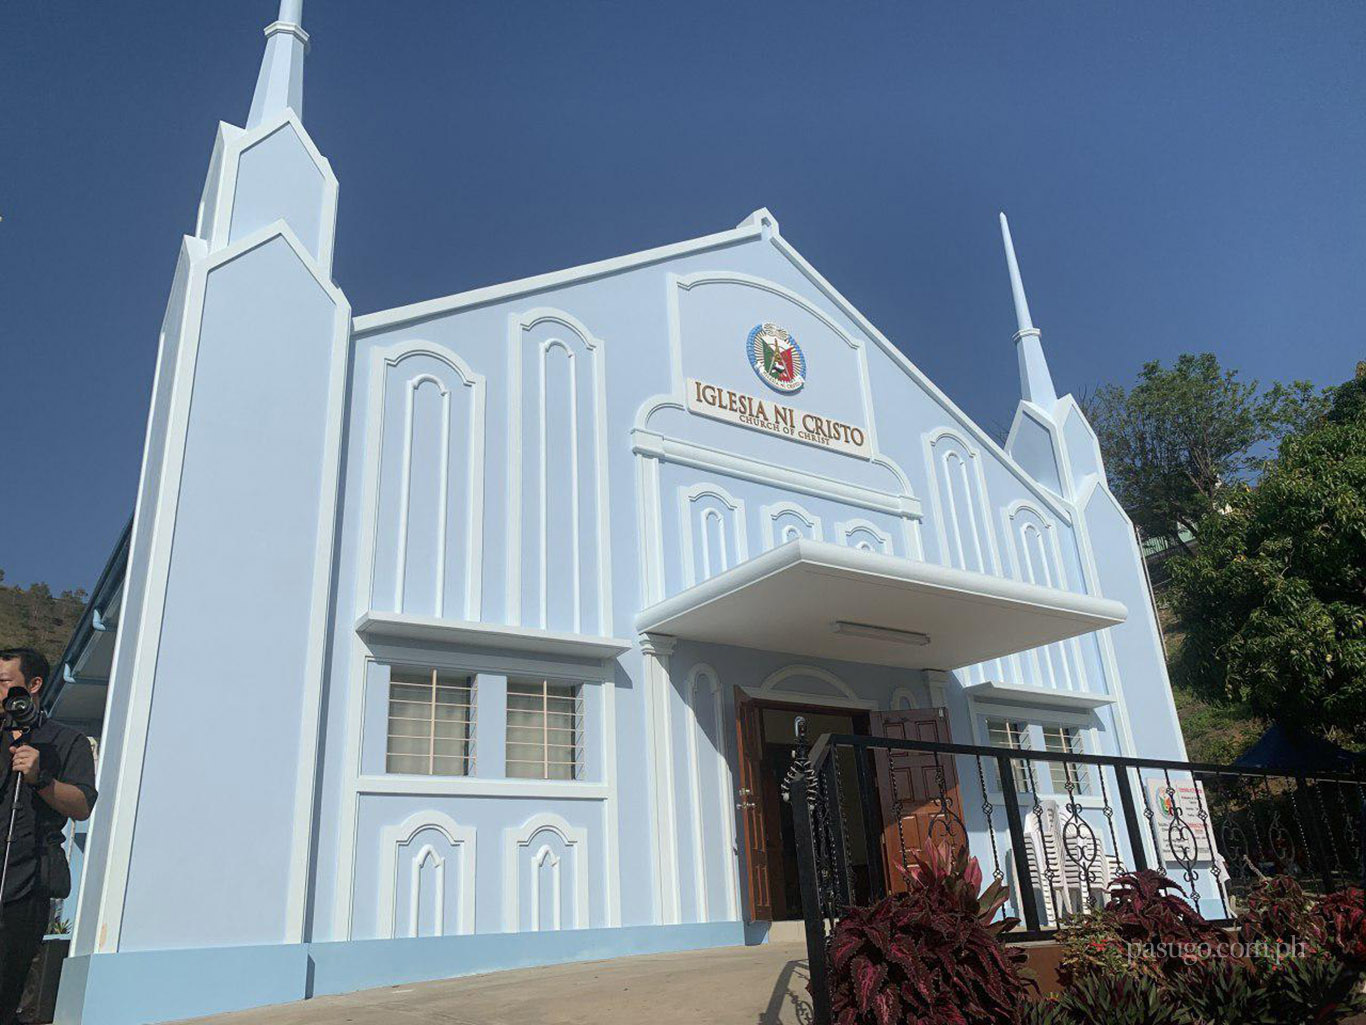 Port Moresby house of worship in Papua New Guinea dedicated to God on October 19, 2019